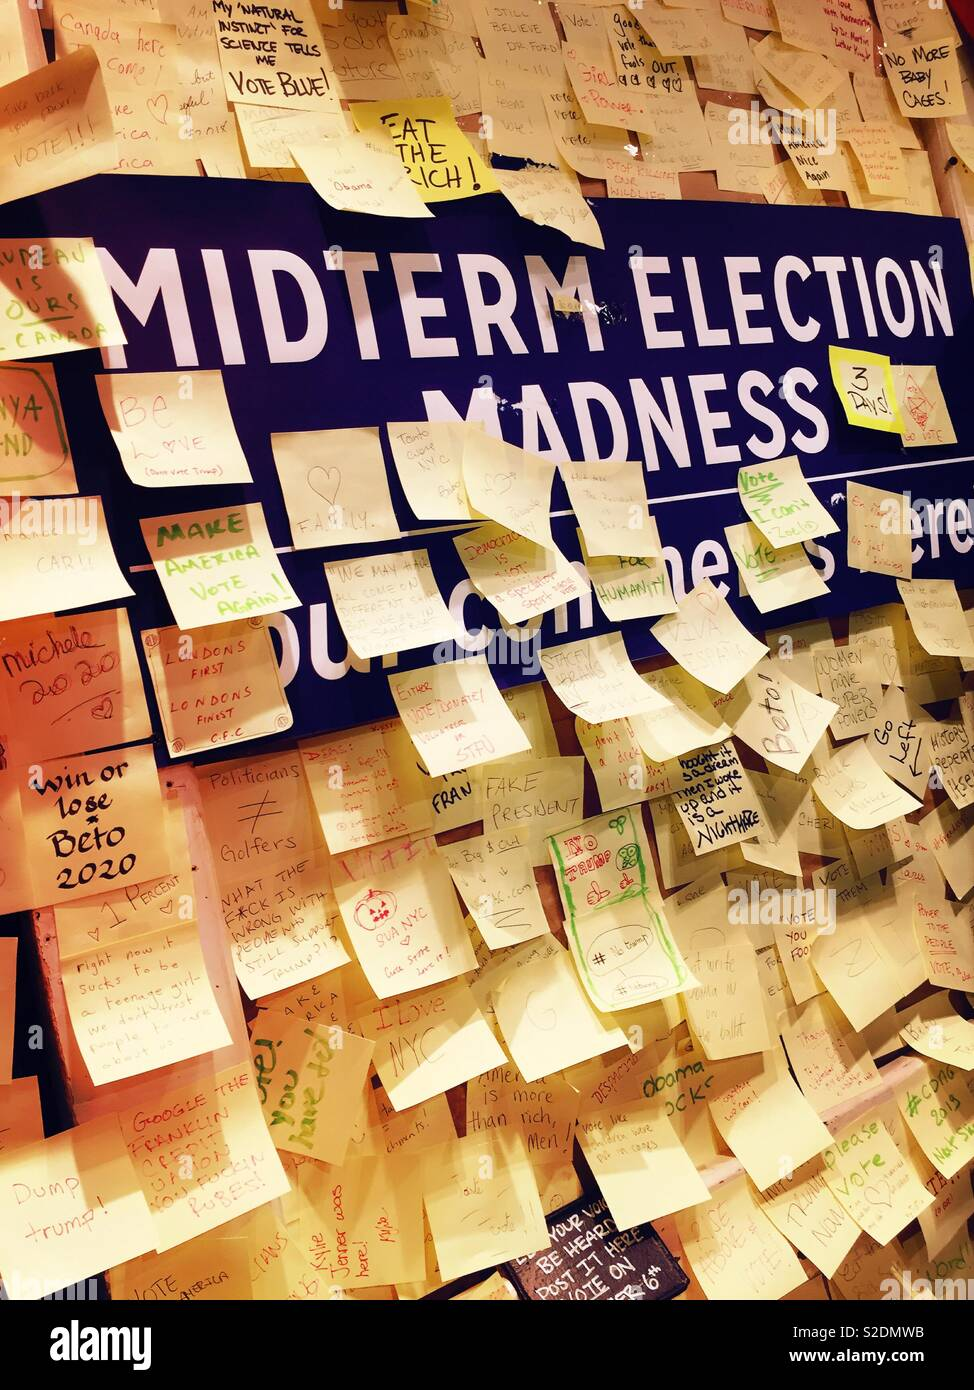 Public bulletin board soliciting comments on the 2018 midterm elections, NYC, USA - Stock Image